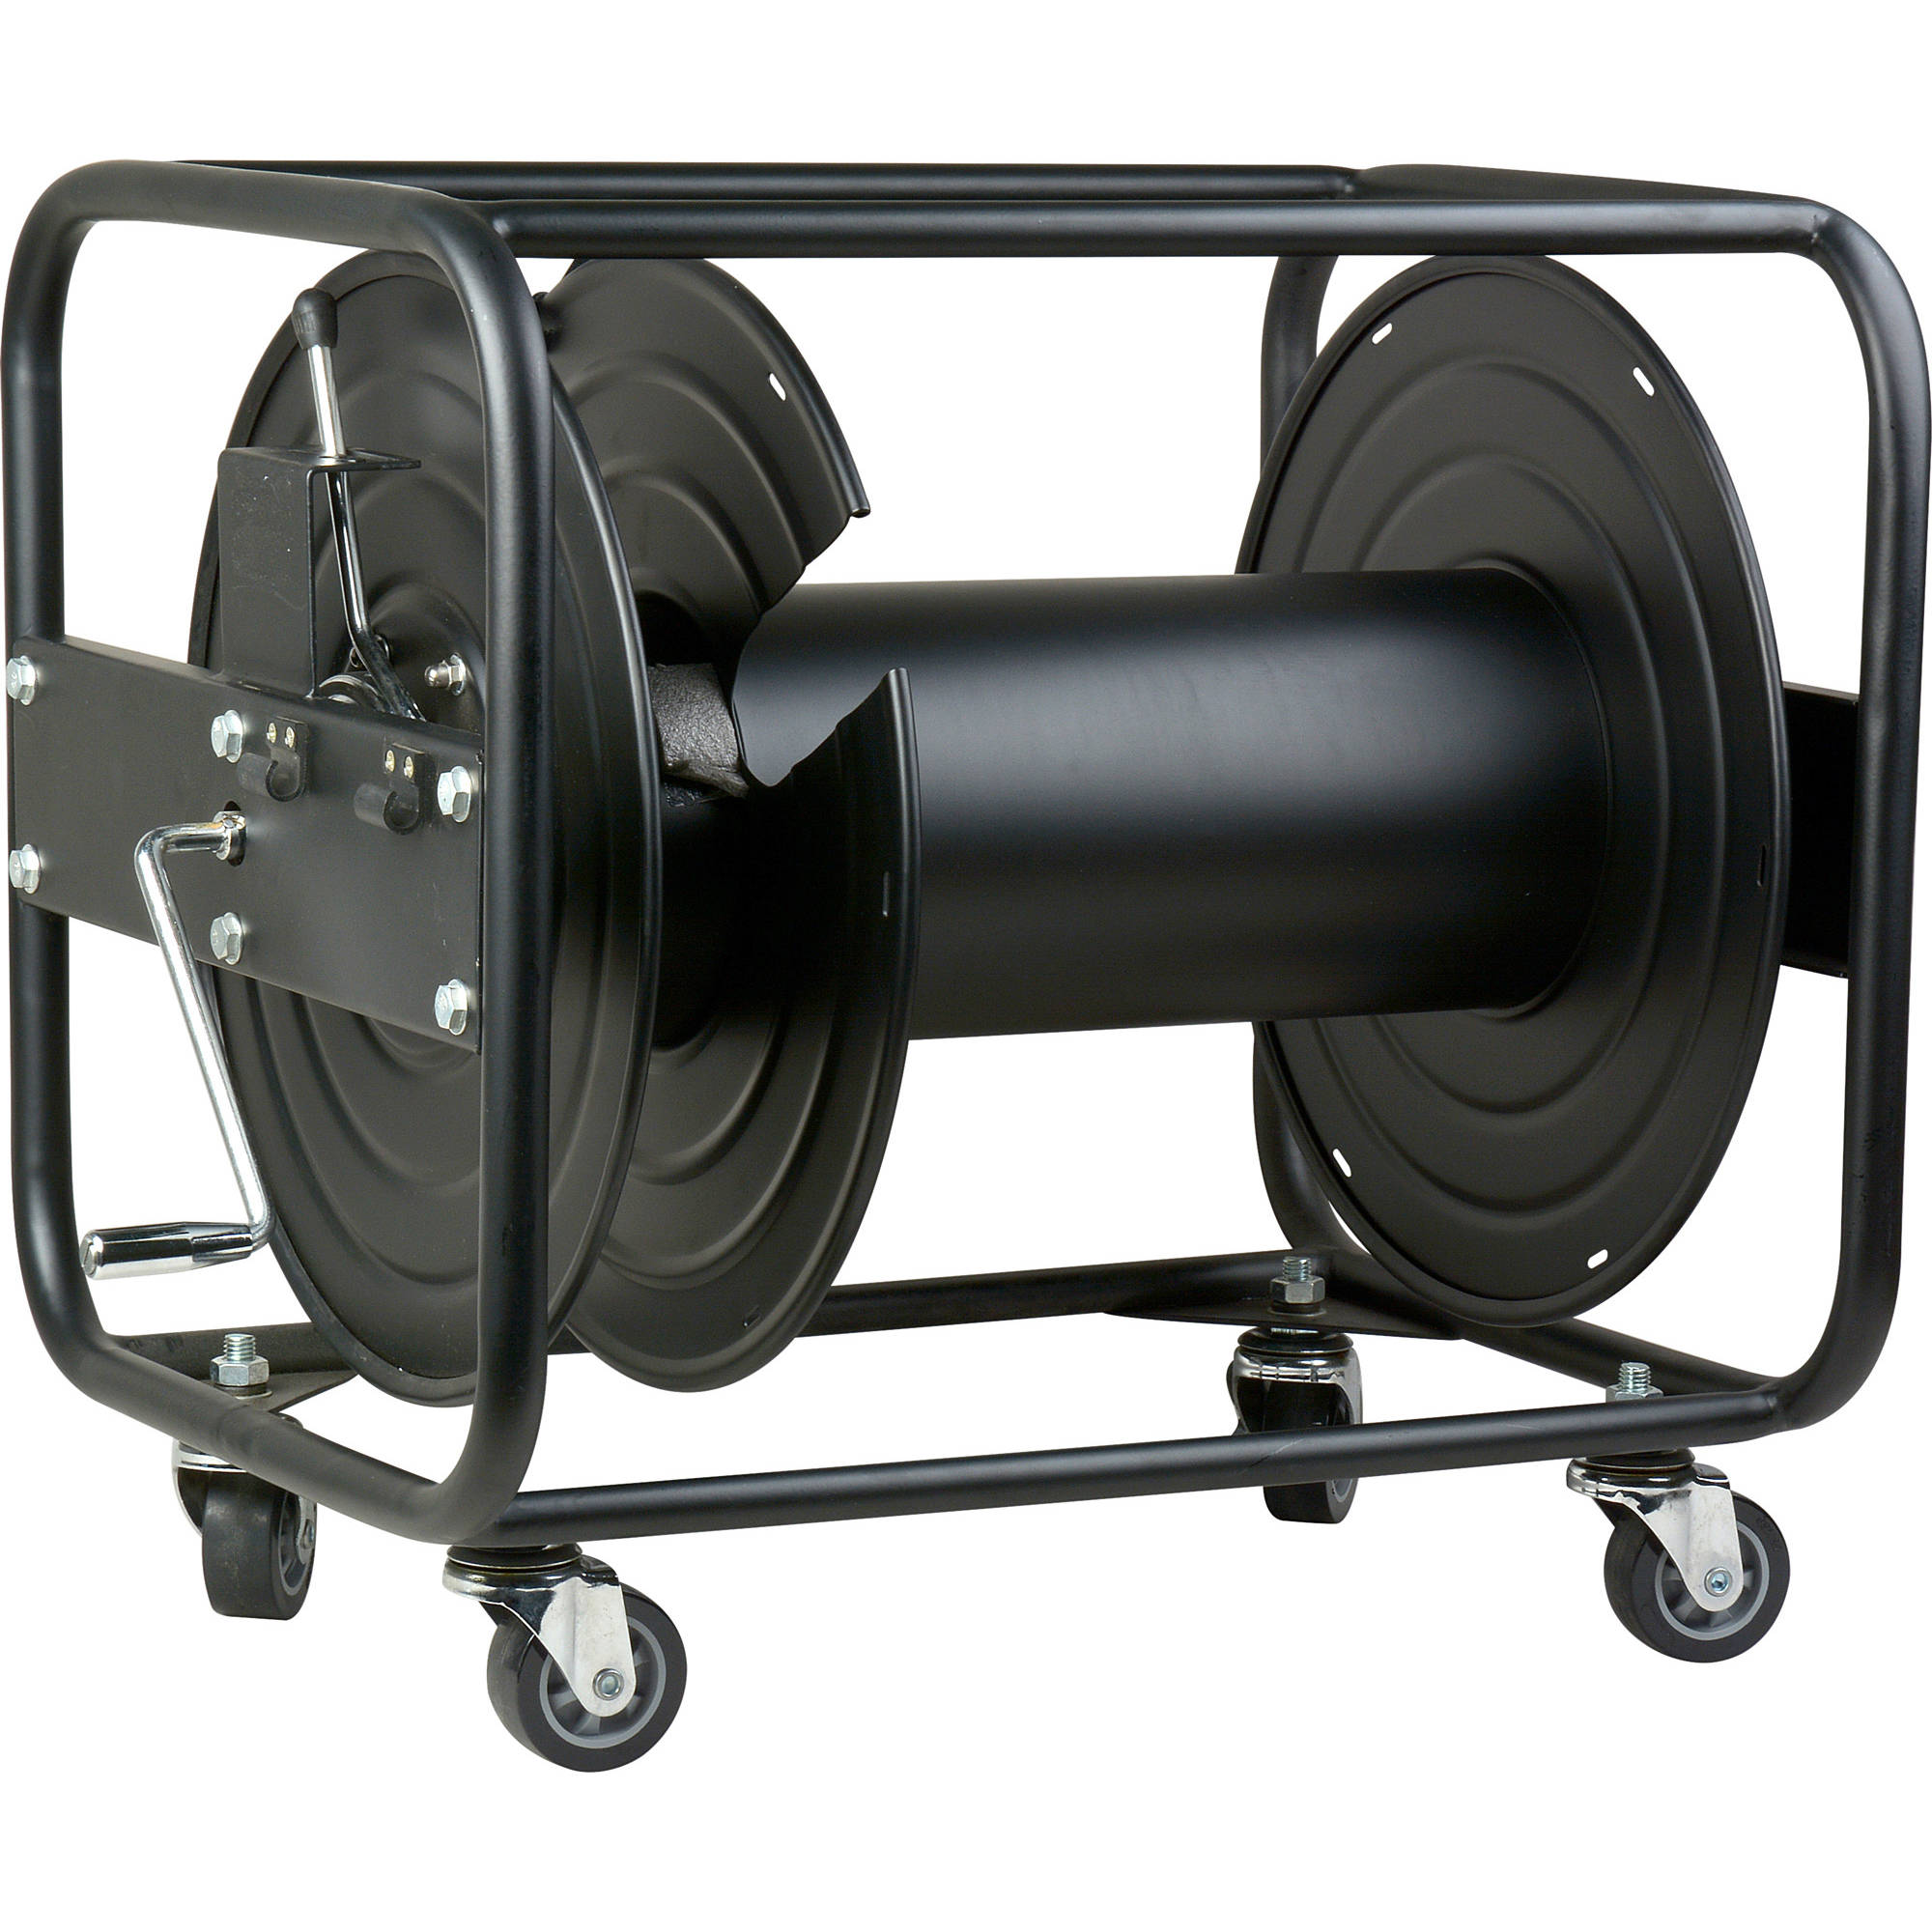 JackReel XL1 High-Capacity Cable Reel for Fiber JACKREEL ...